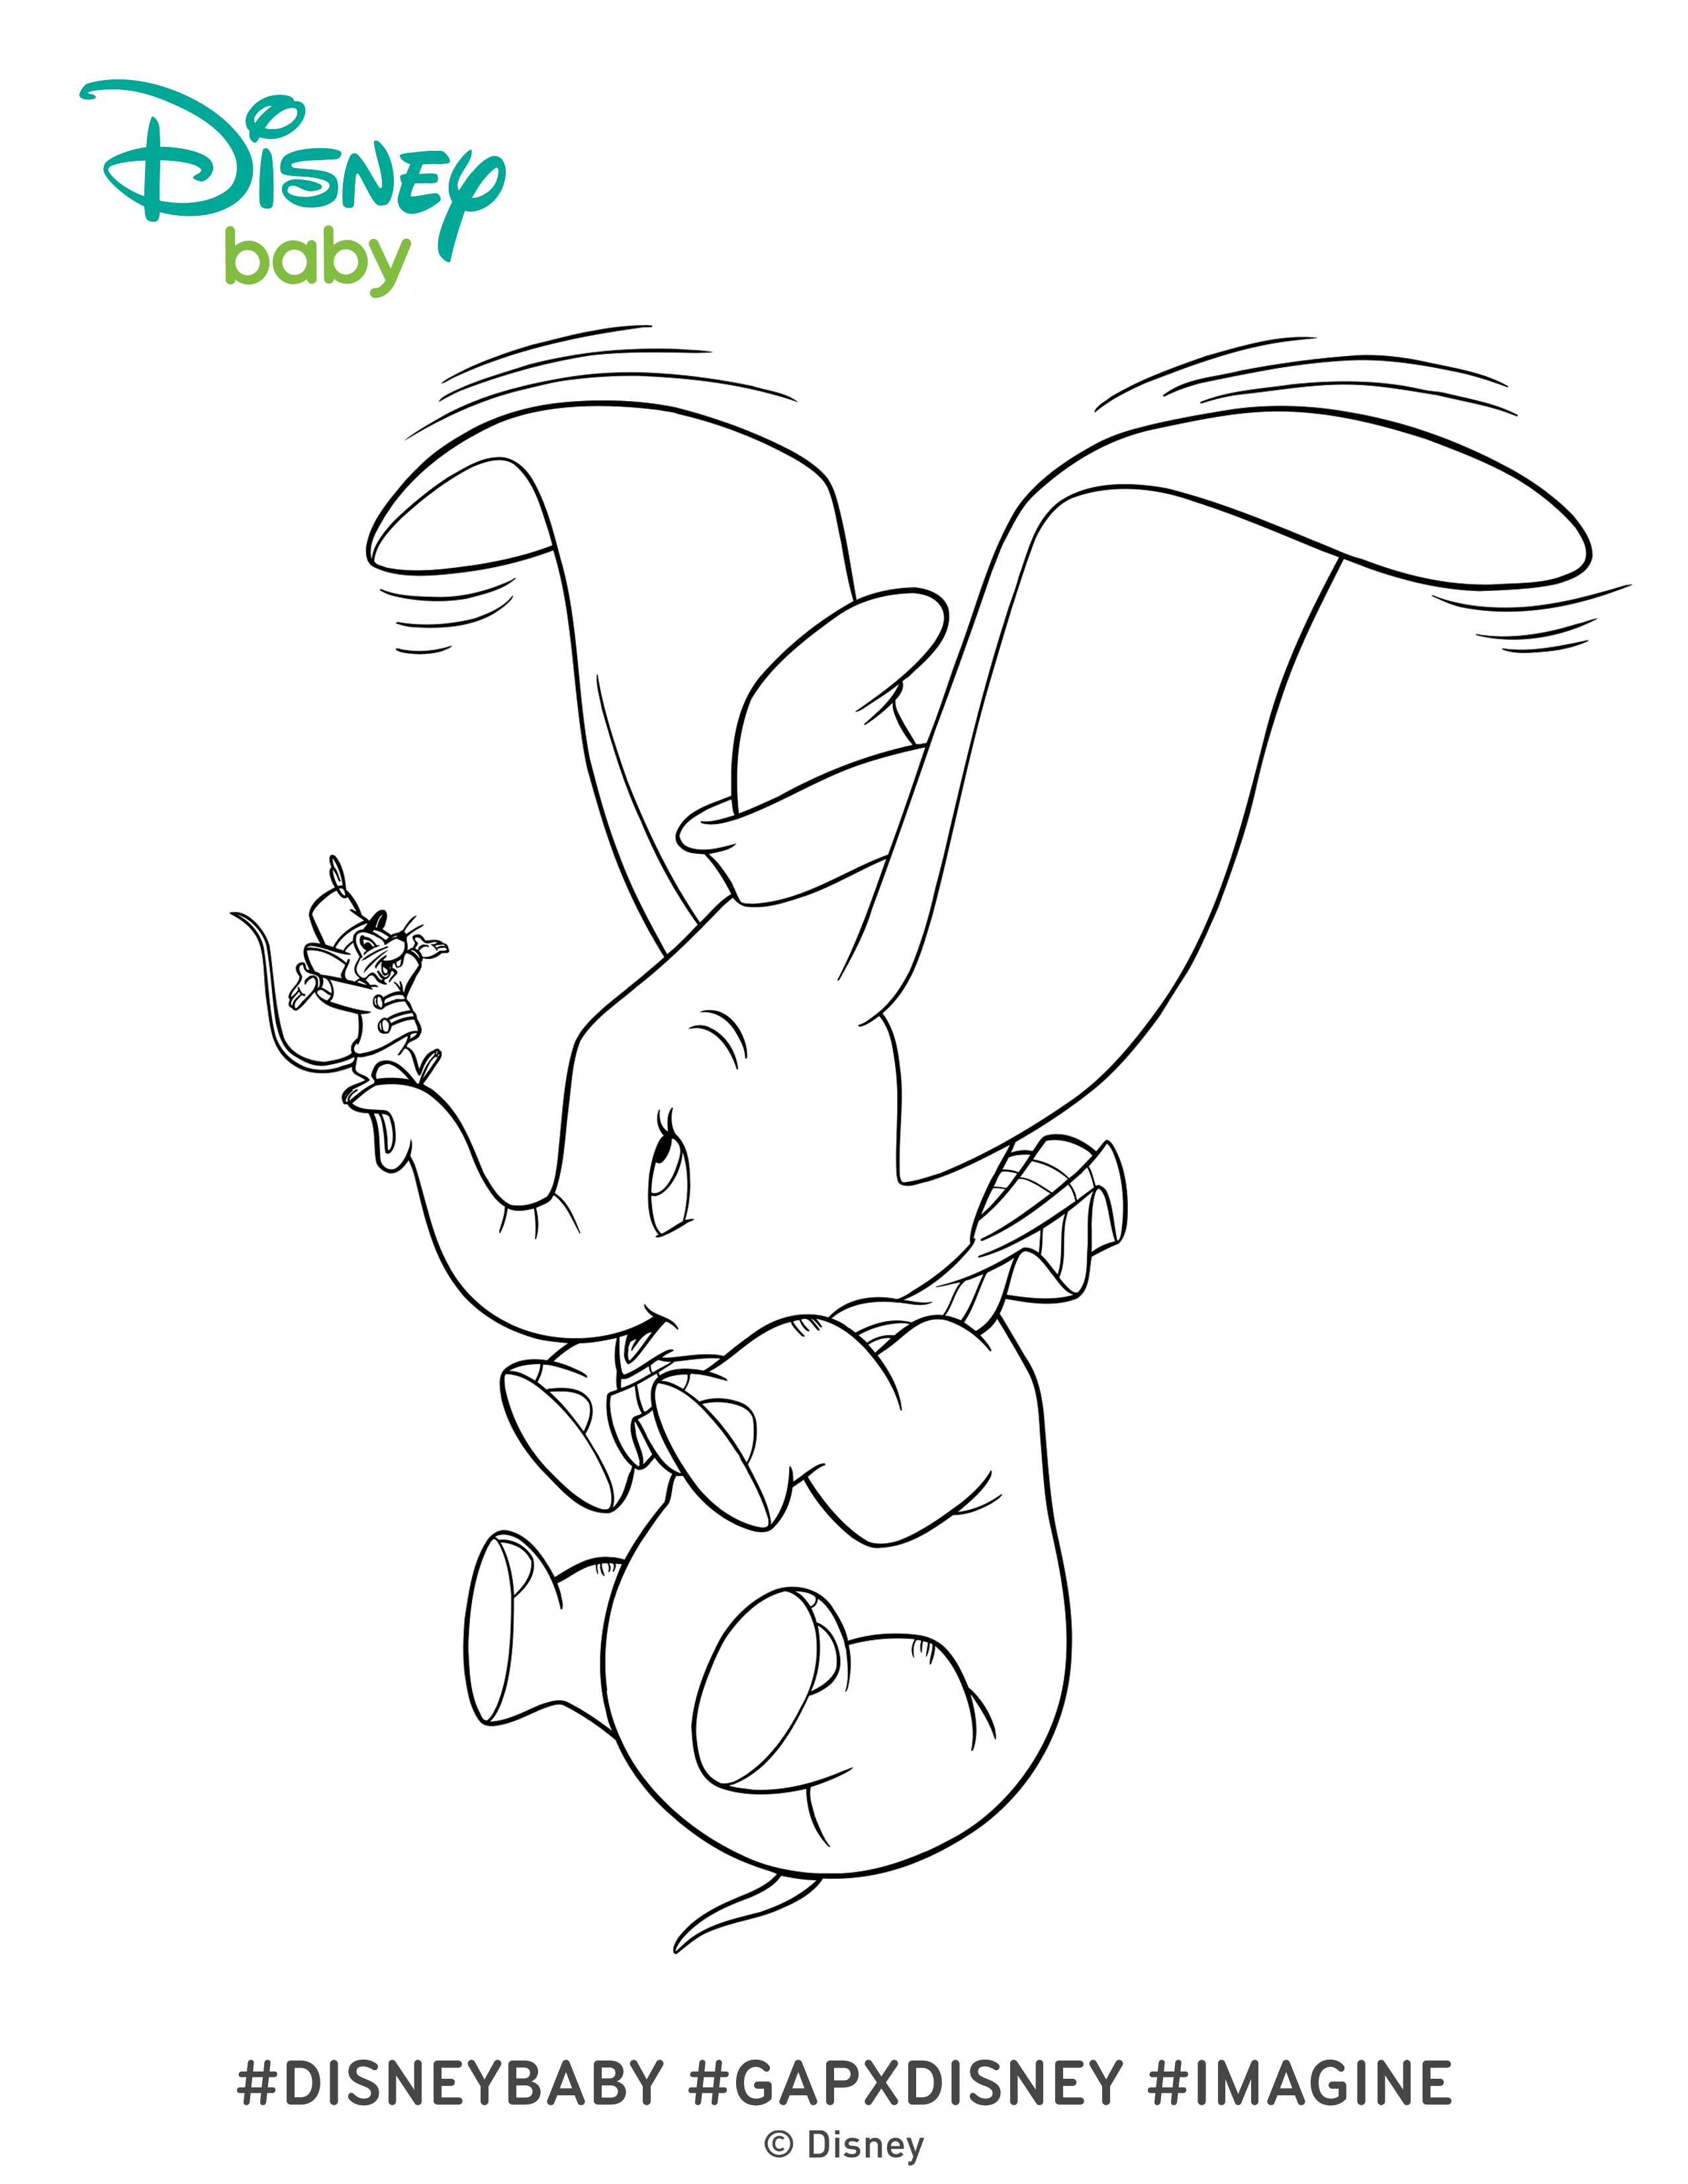 Dumbo Coloring Pages | Elephant coloring page, Disney coloring ... | 3300x2550